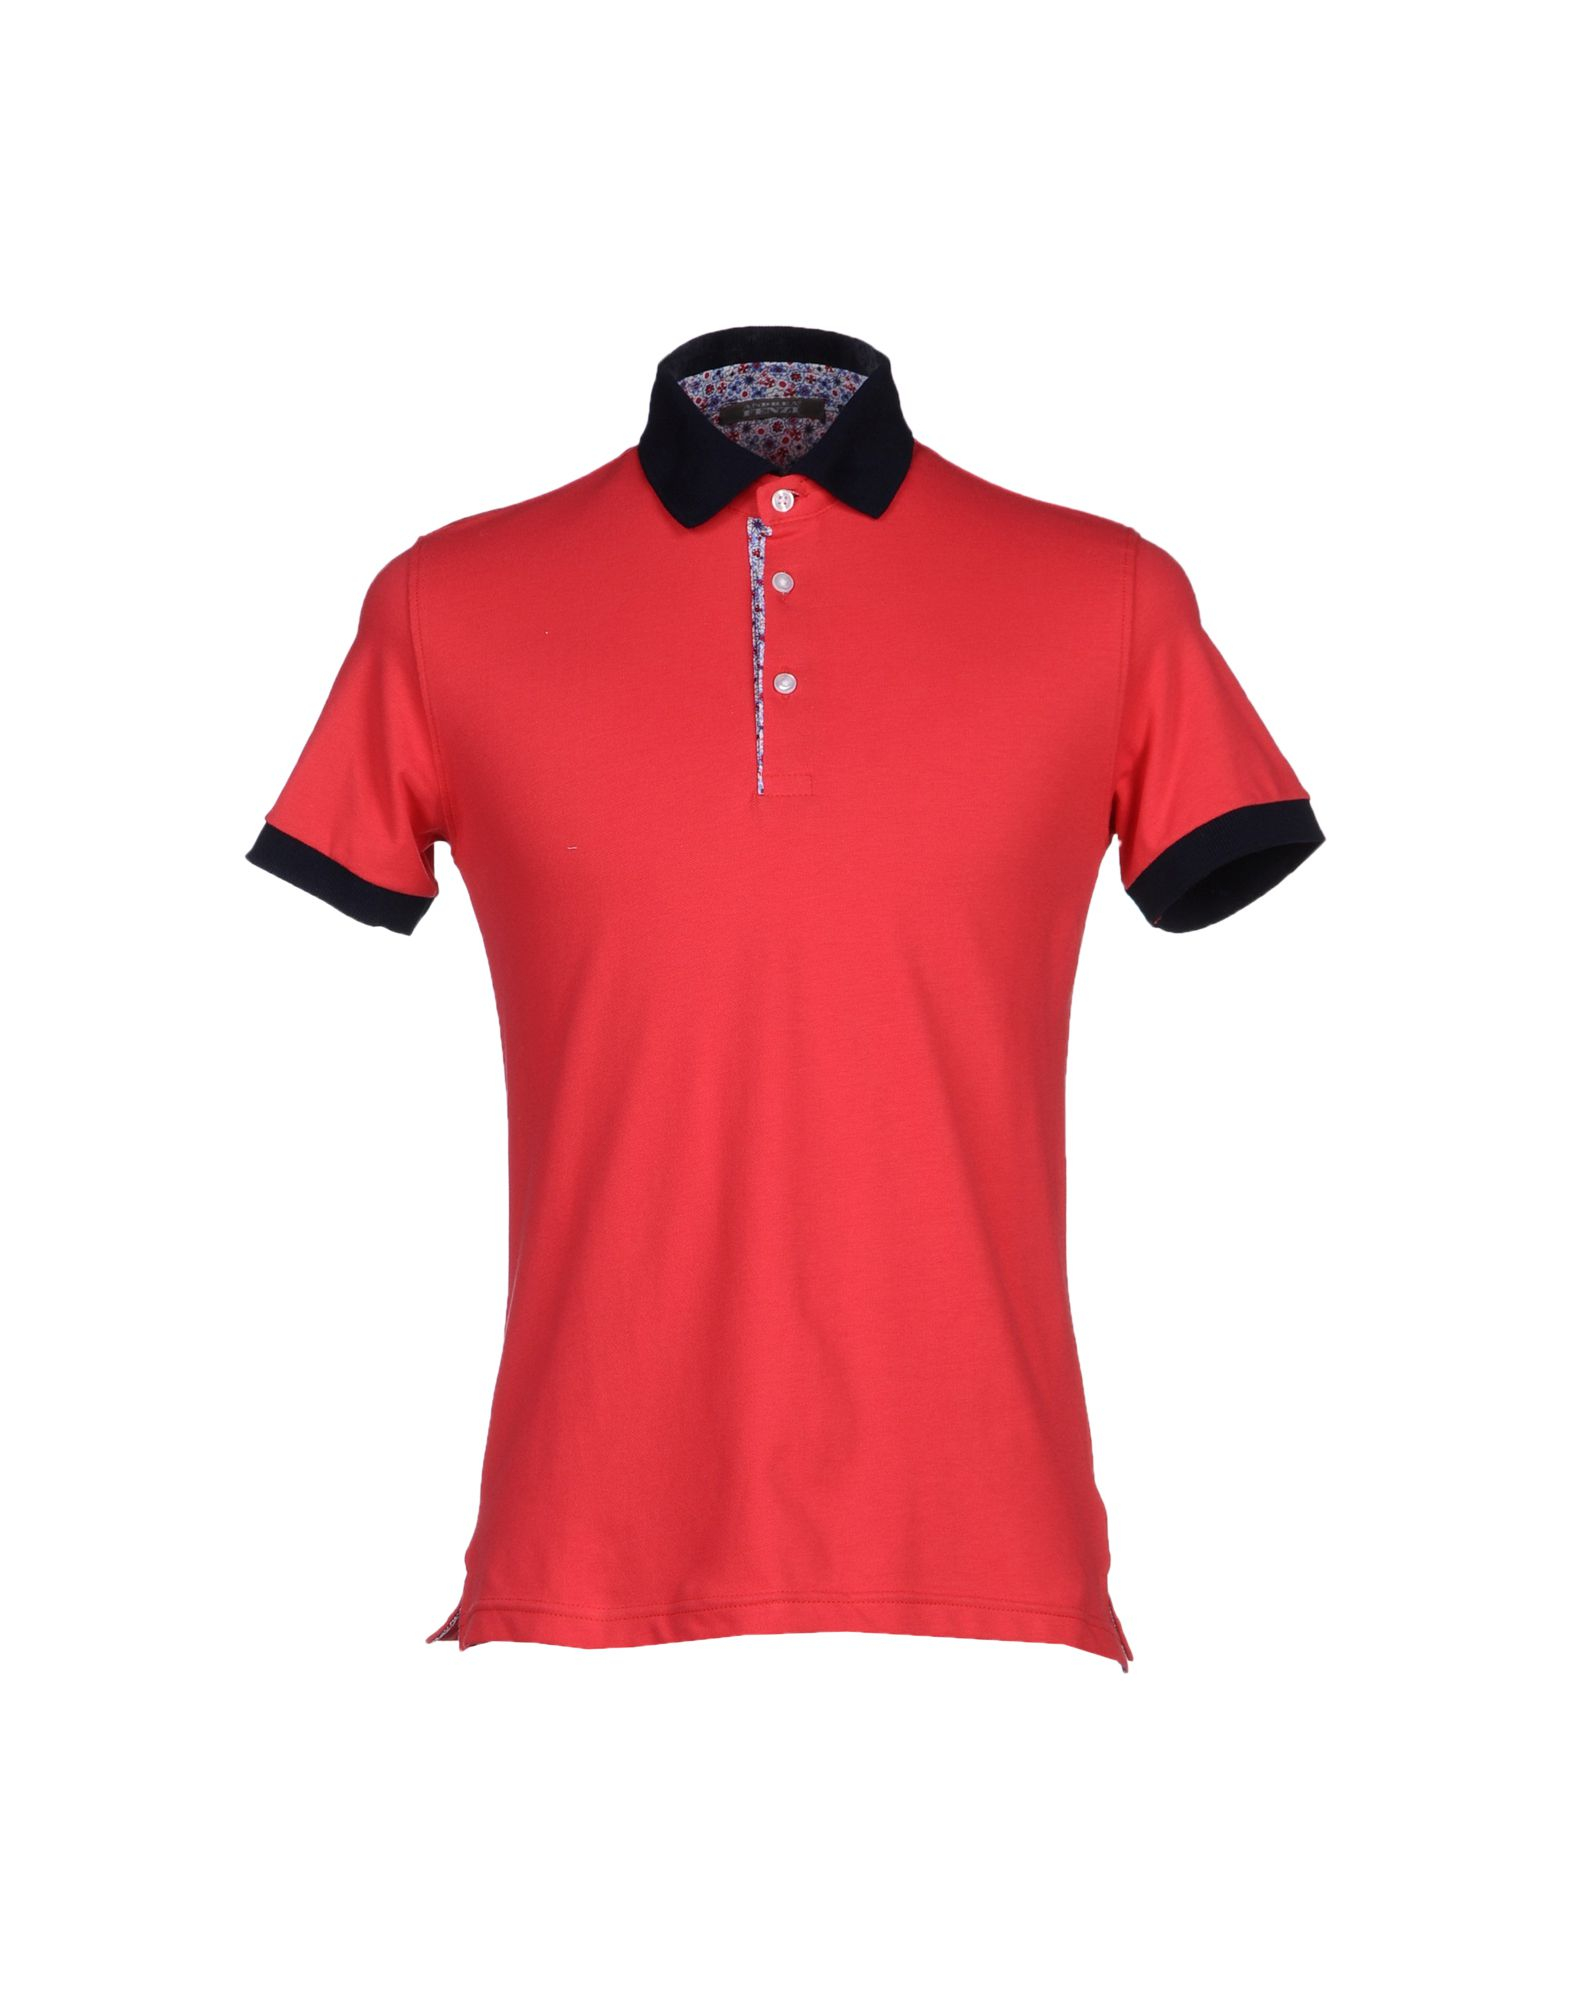 Andrea fenzi polo shirt in red for men lyst Man in polo shirt